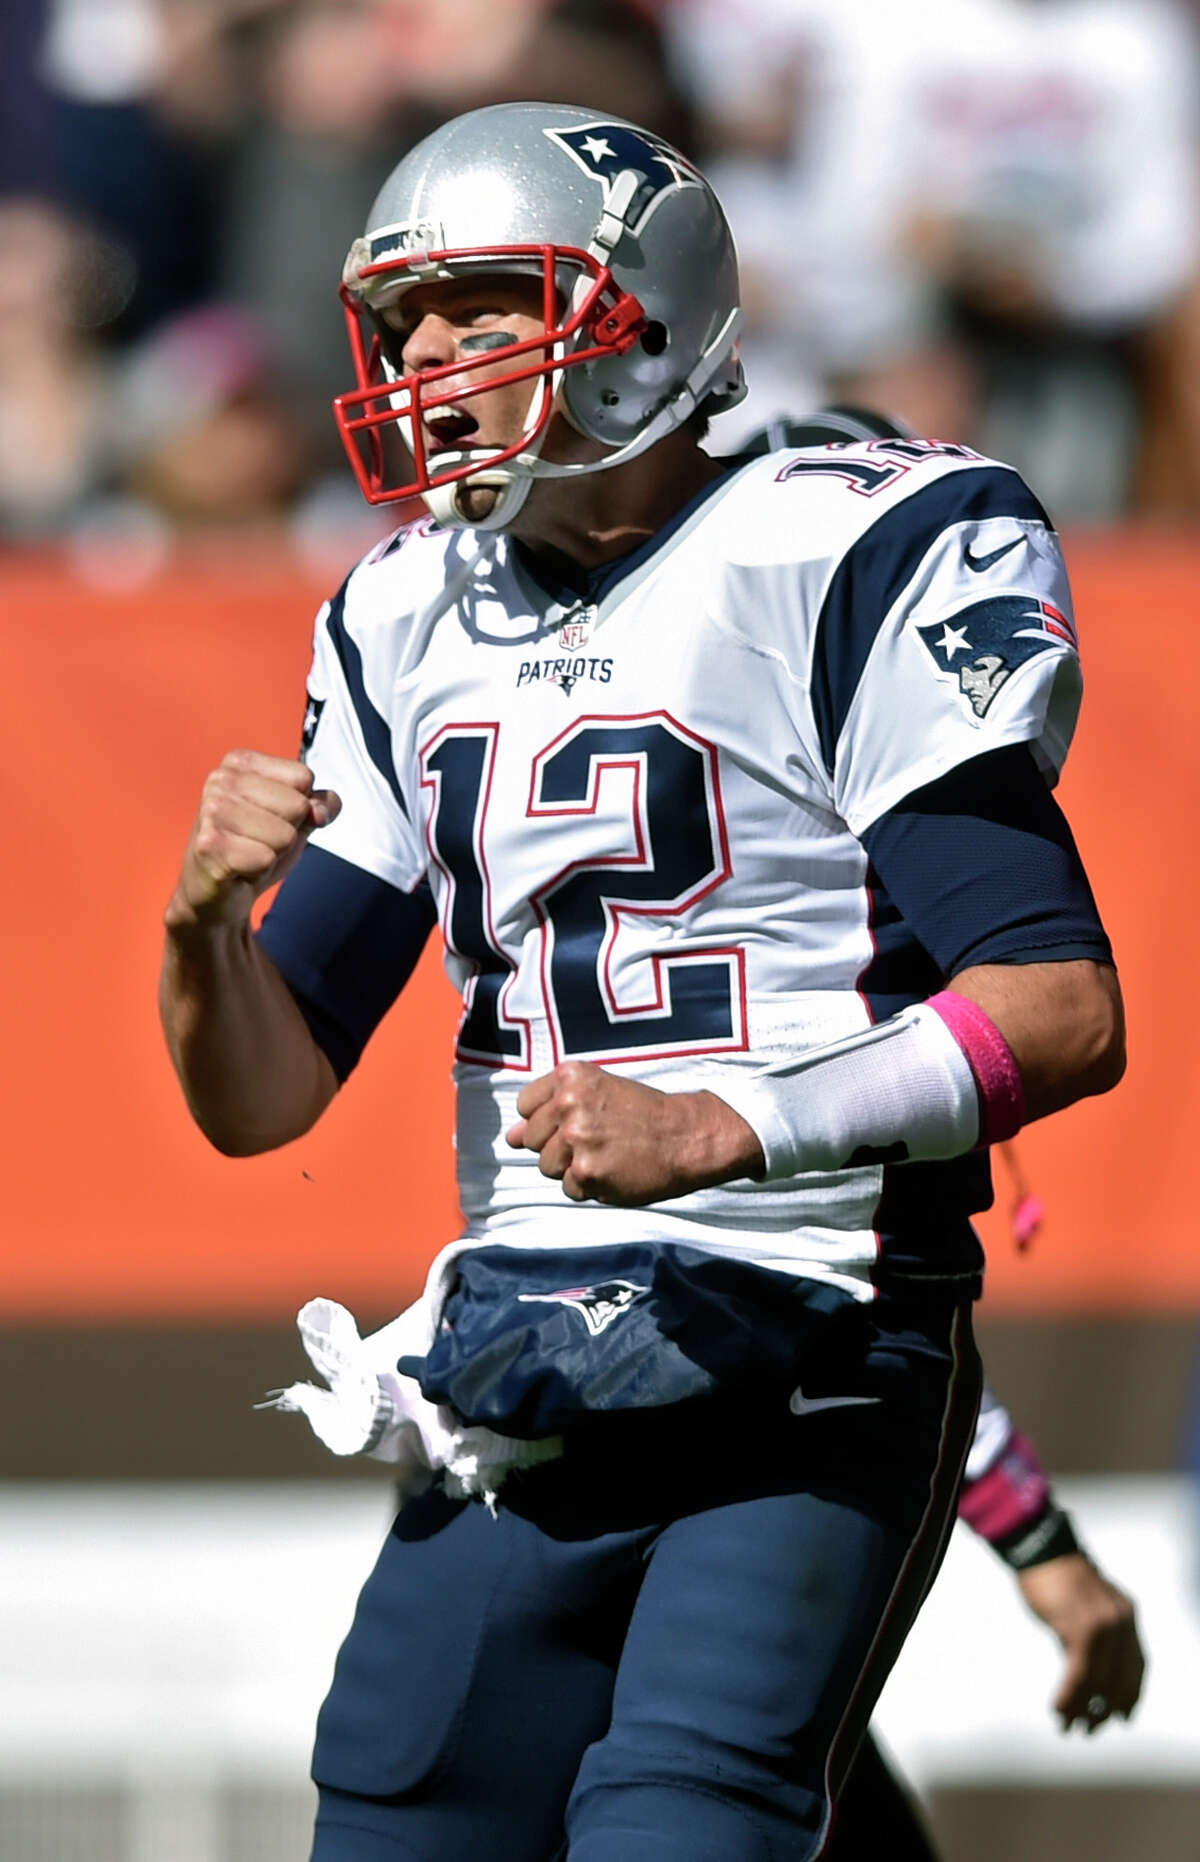 Cincinnati (2-3) plus-9 at New England (4-1) Patriots 30-23